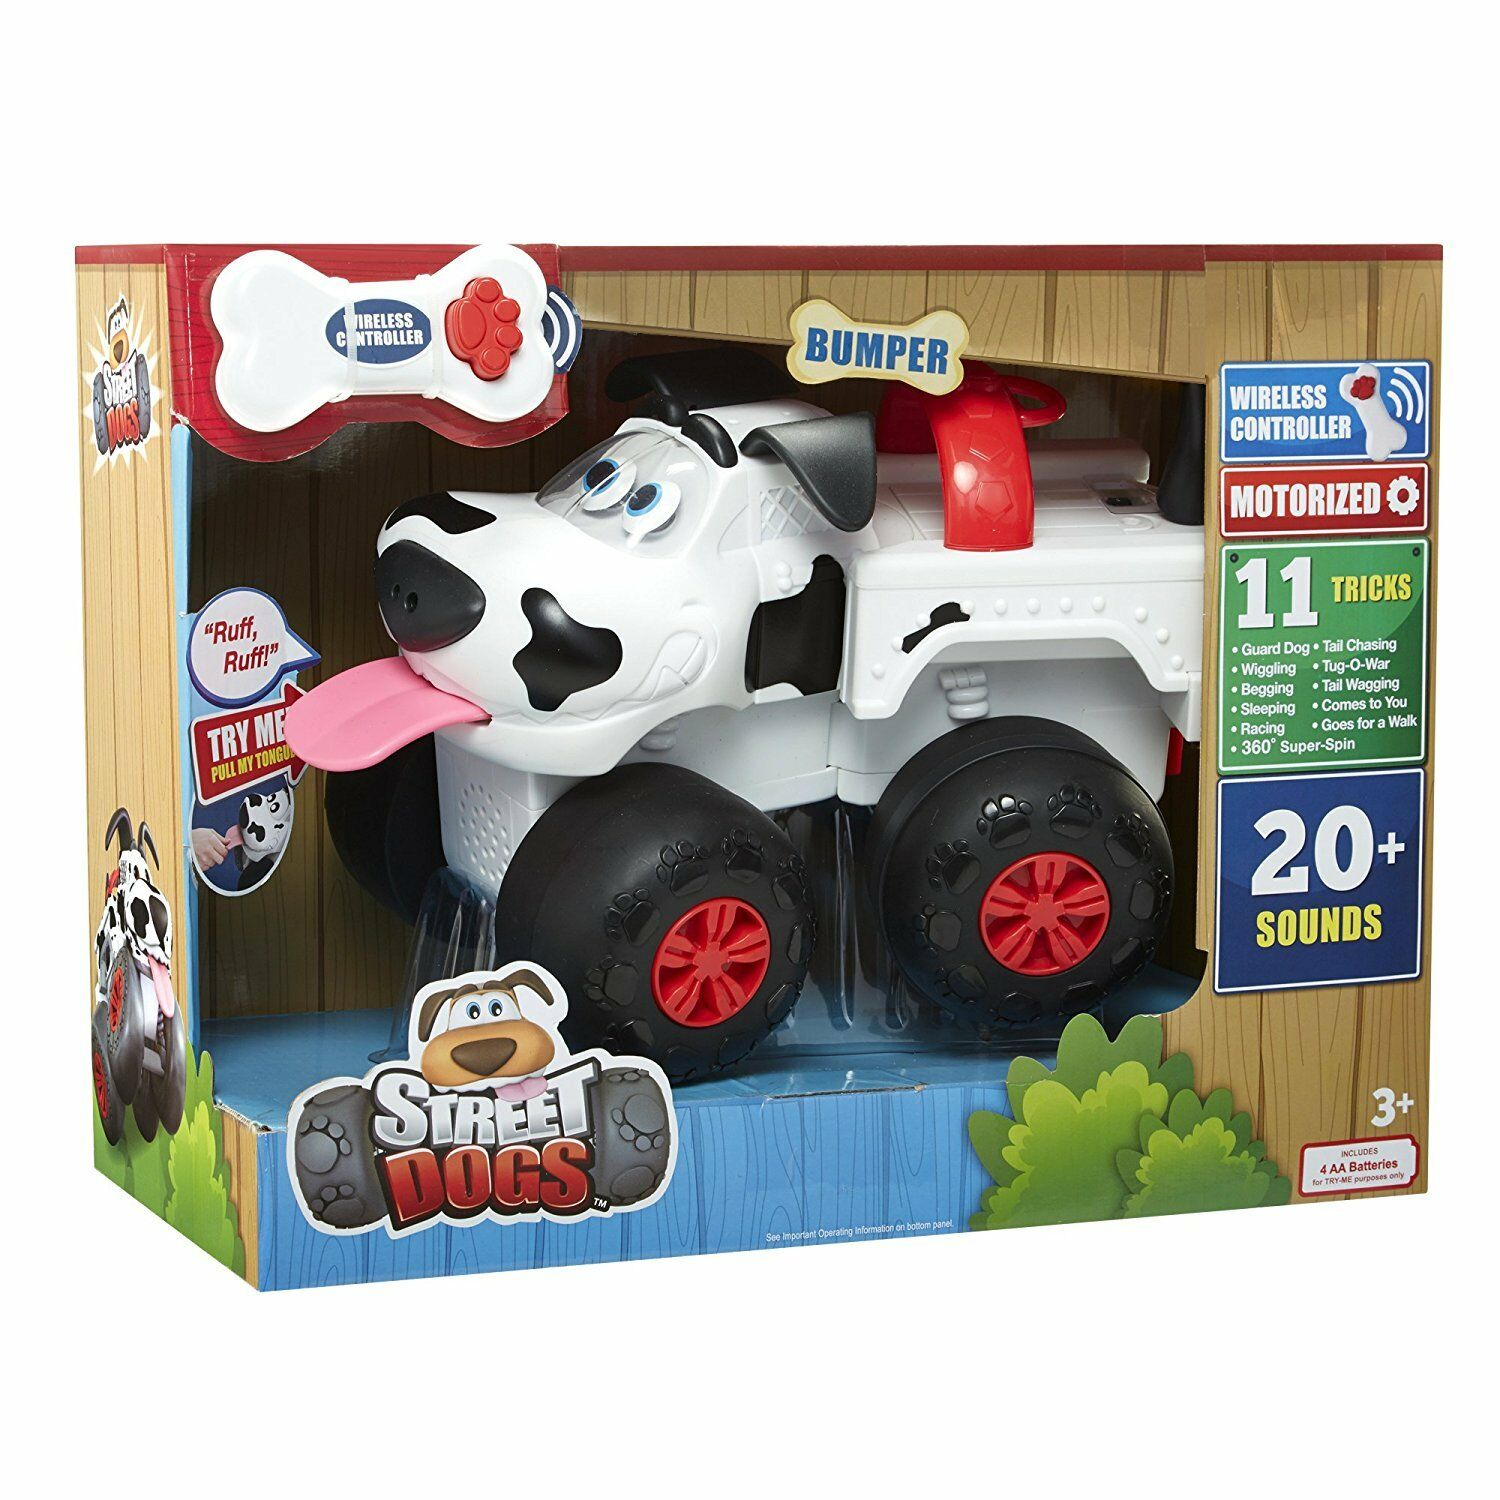 Street Dogs Bumper Electronic Toy